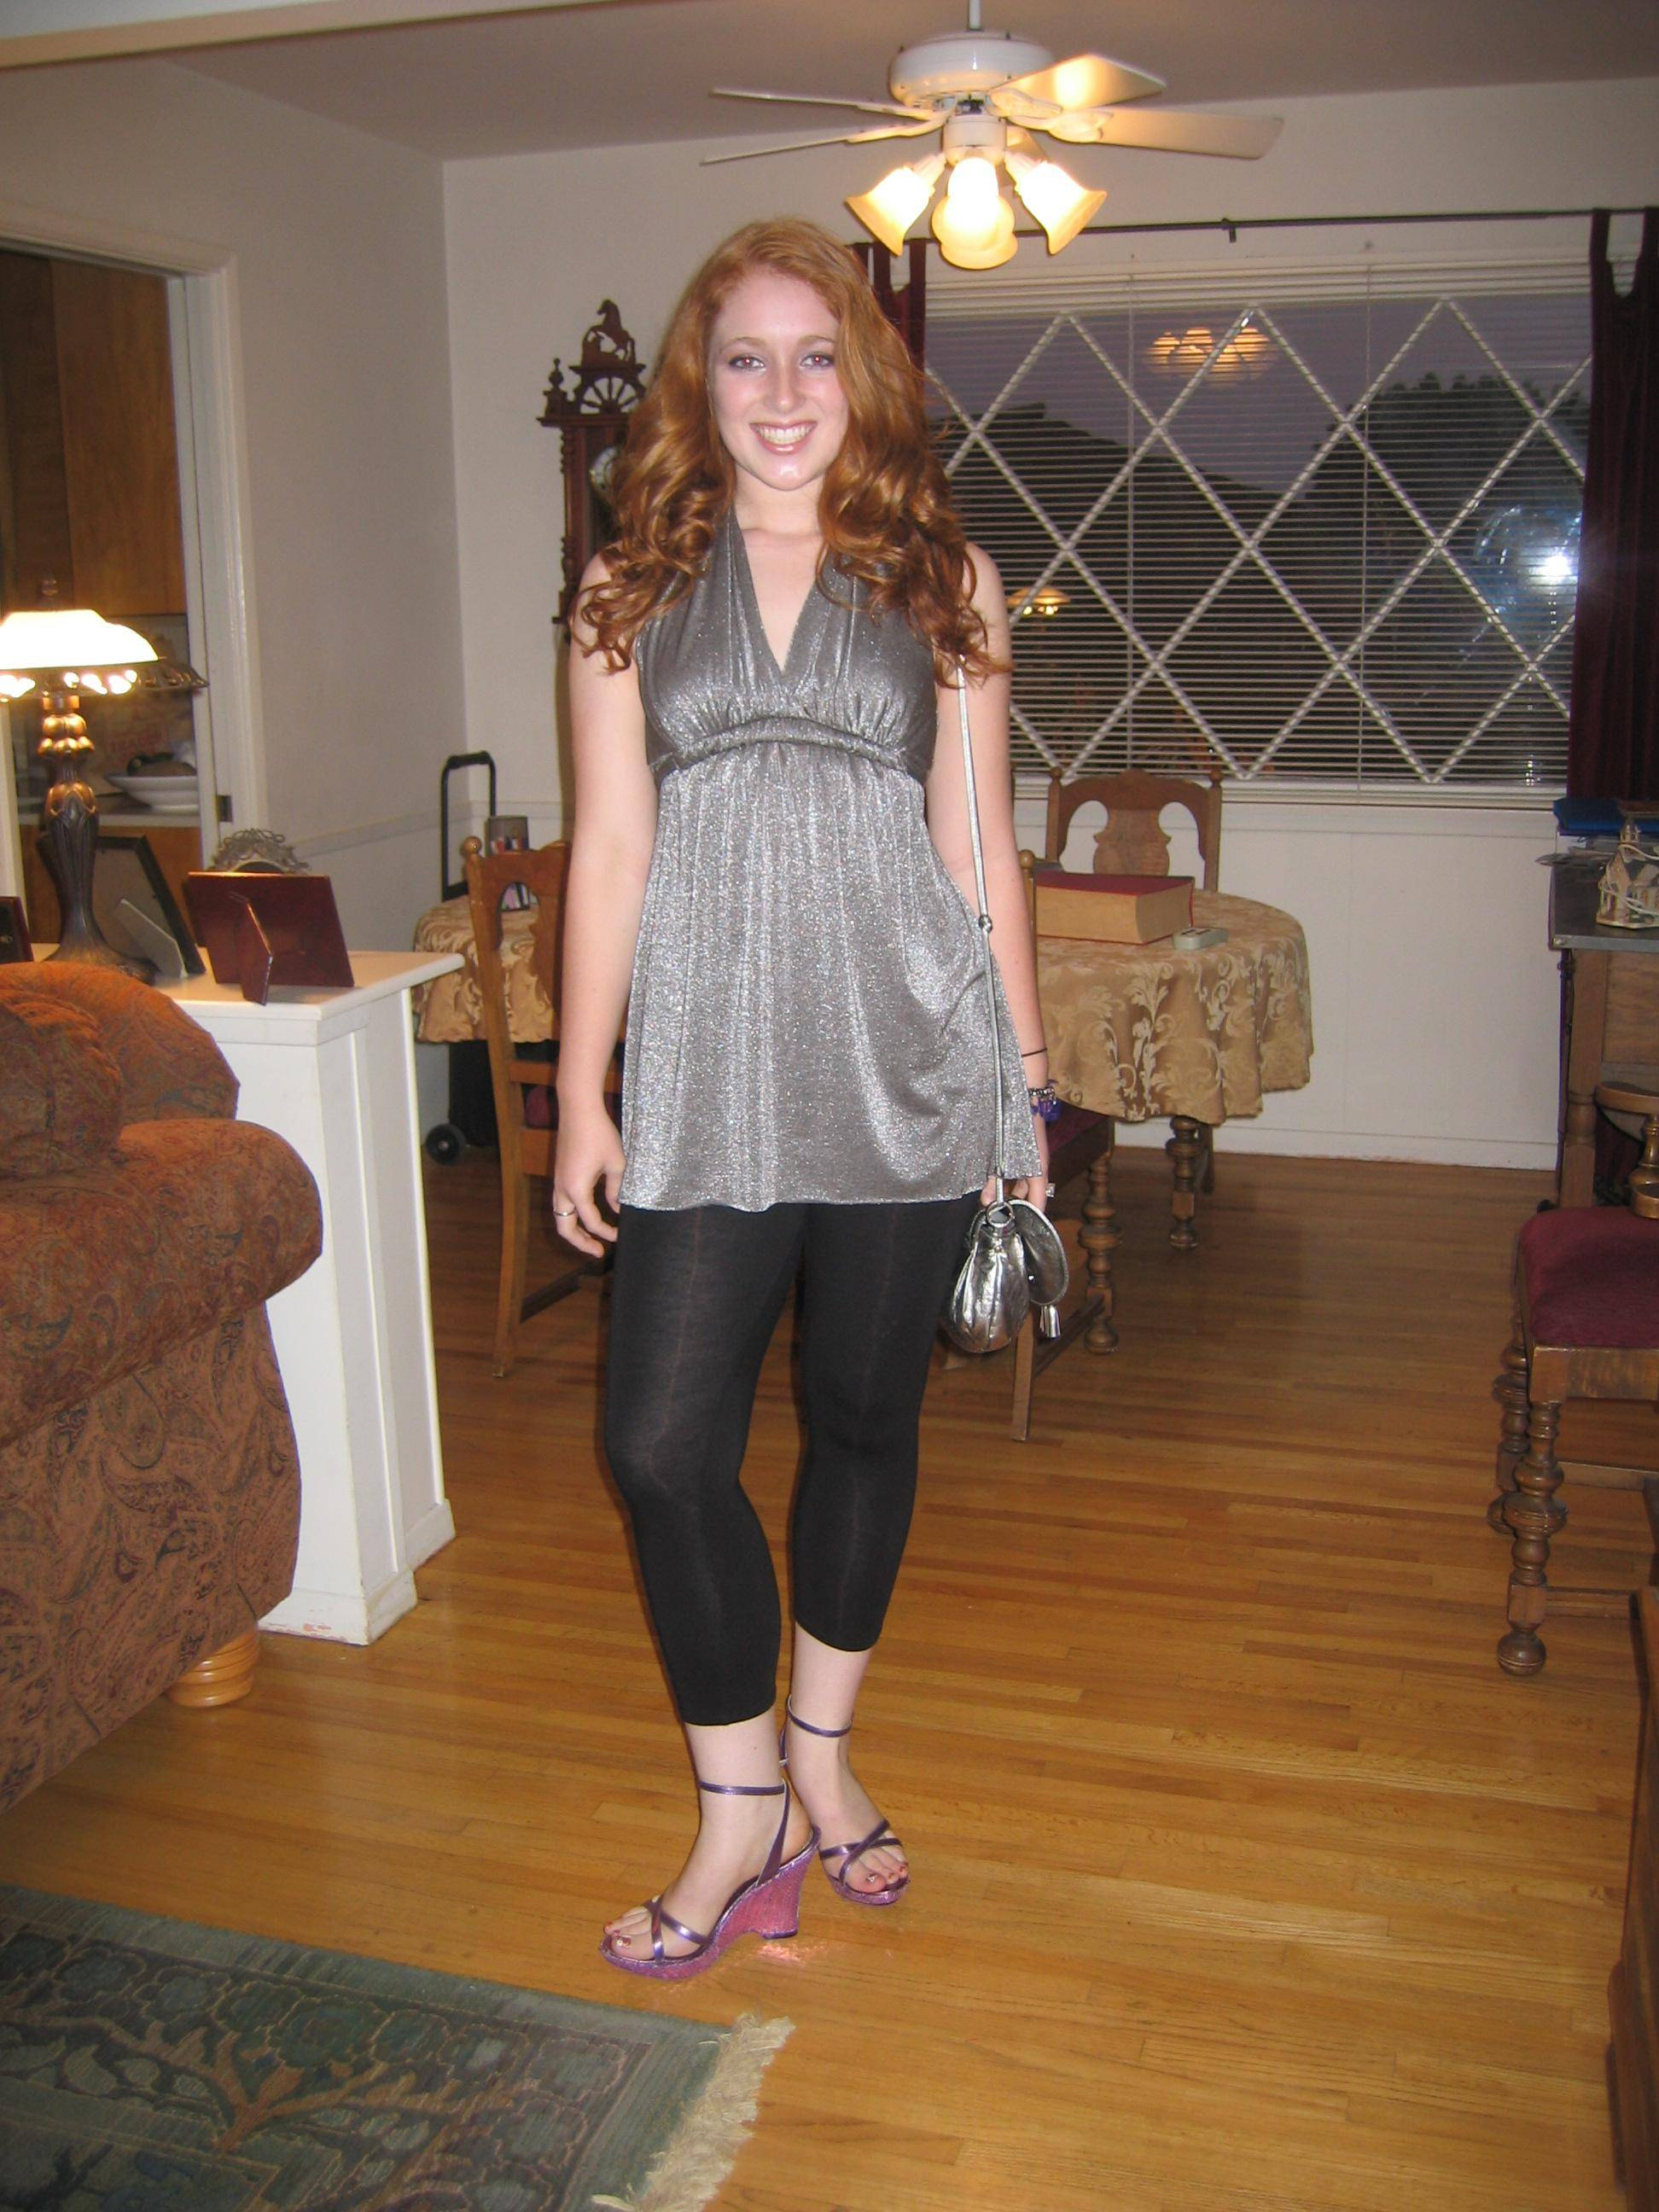 Meredith Ready for HS graduation party -  '08